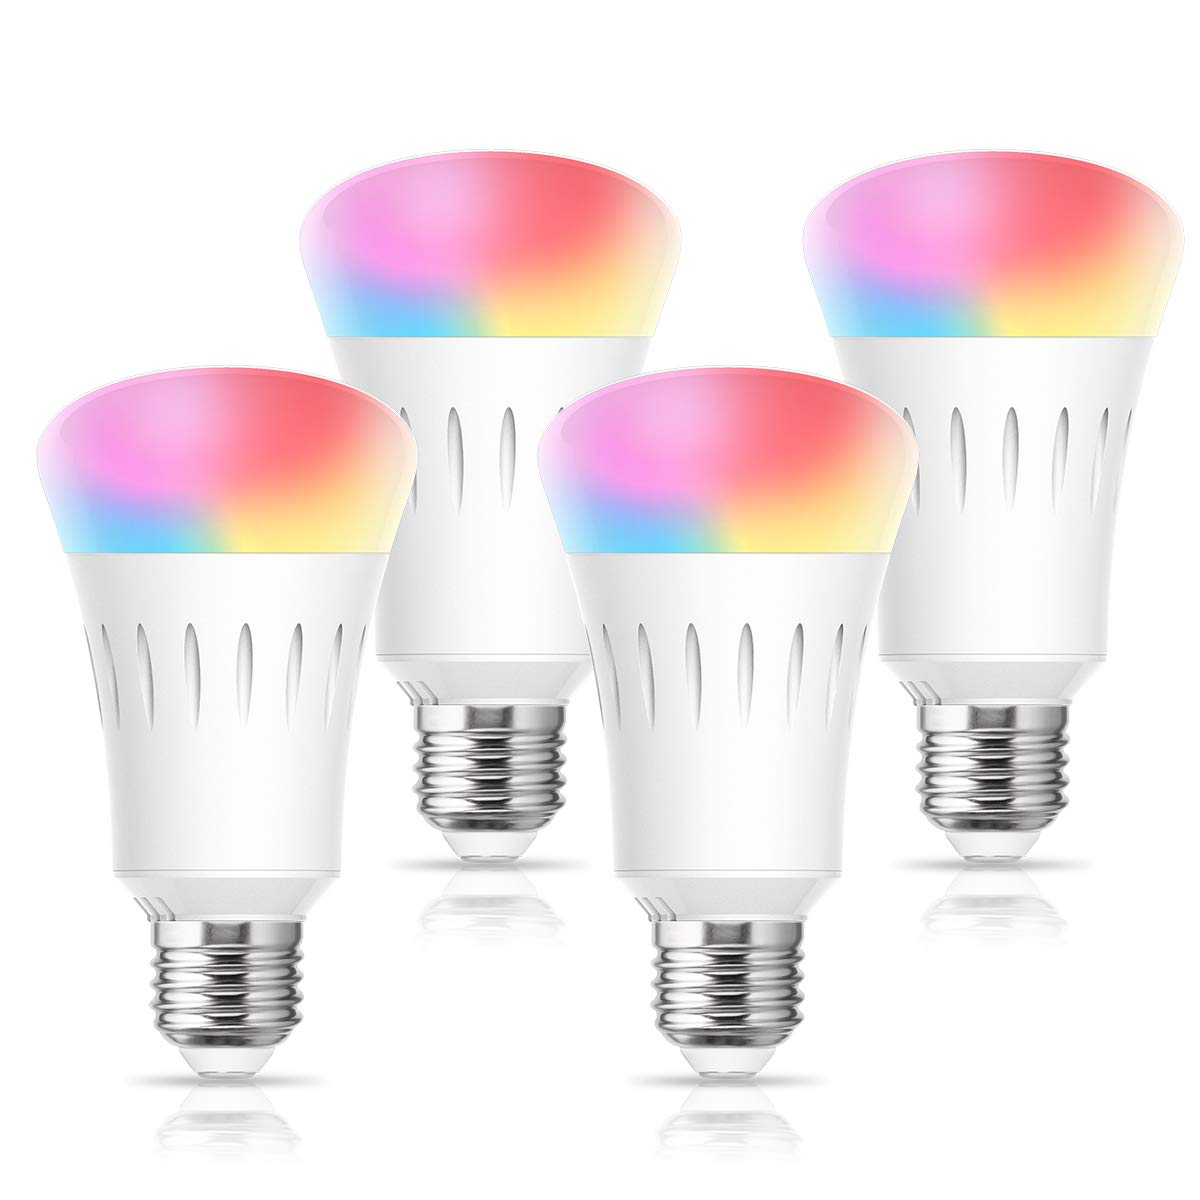 LOHAS Smart LED Light Bulb, WiFi LED Bulb Multicolored Dimmable Smart Lights Work with Alexa, Google Home and Siri (No Hub Required), 810LM 60W LED Bulb Equivalent, A19 LED E26 Base, UL Listed, 4 Pack